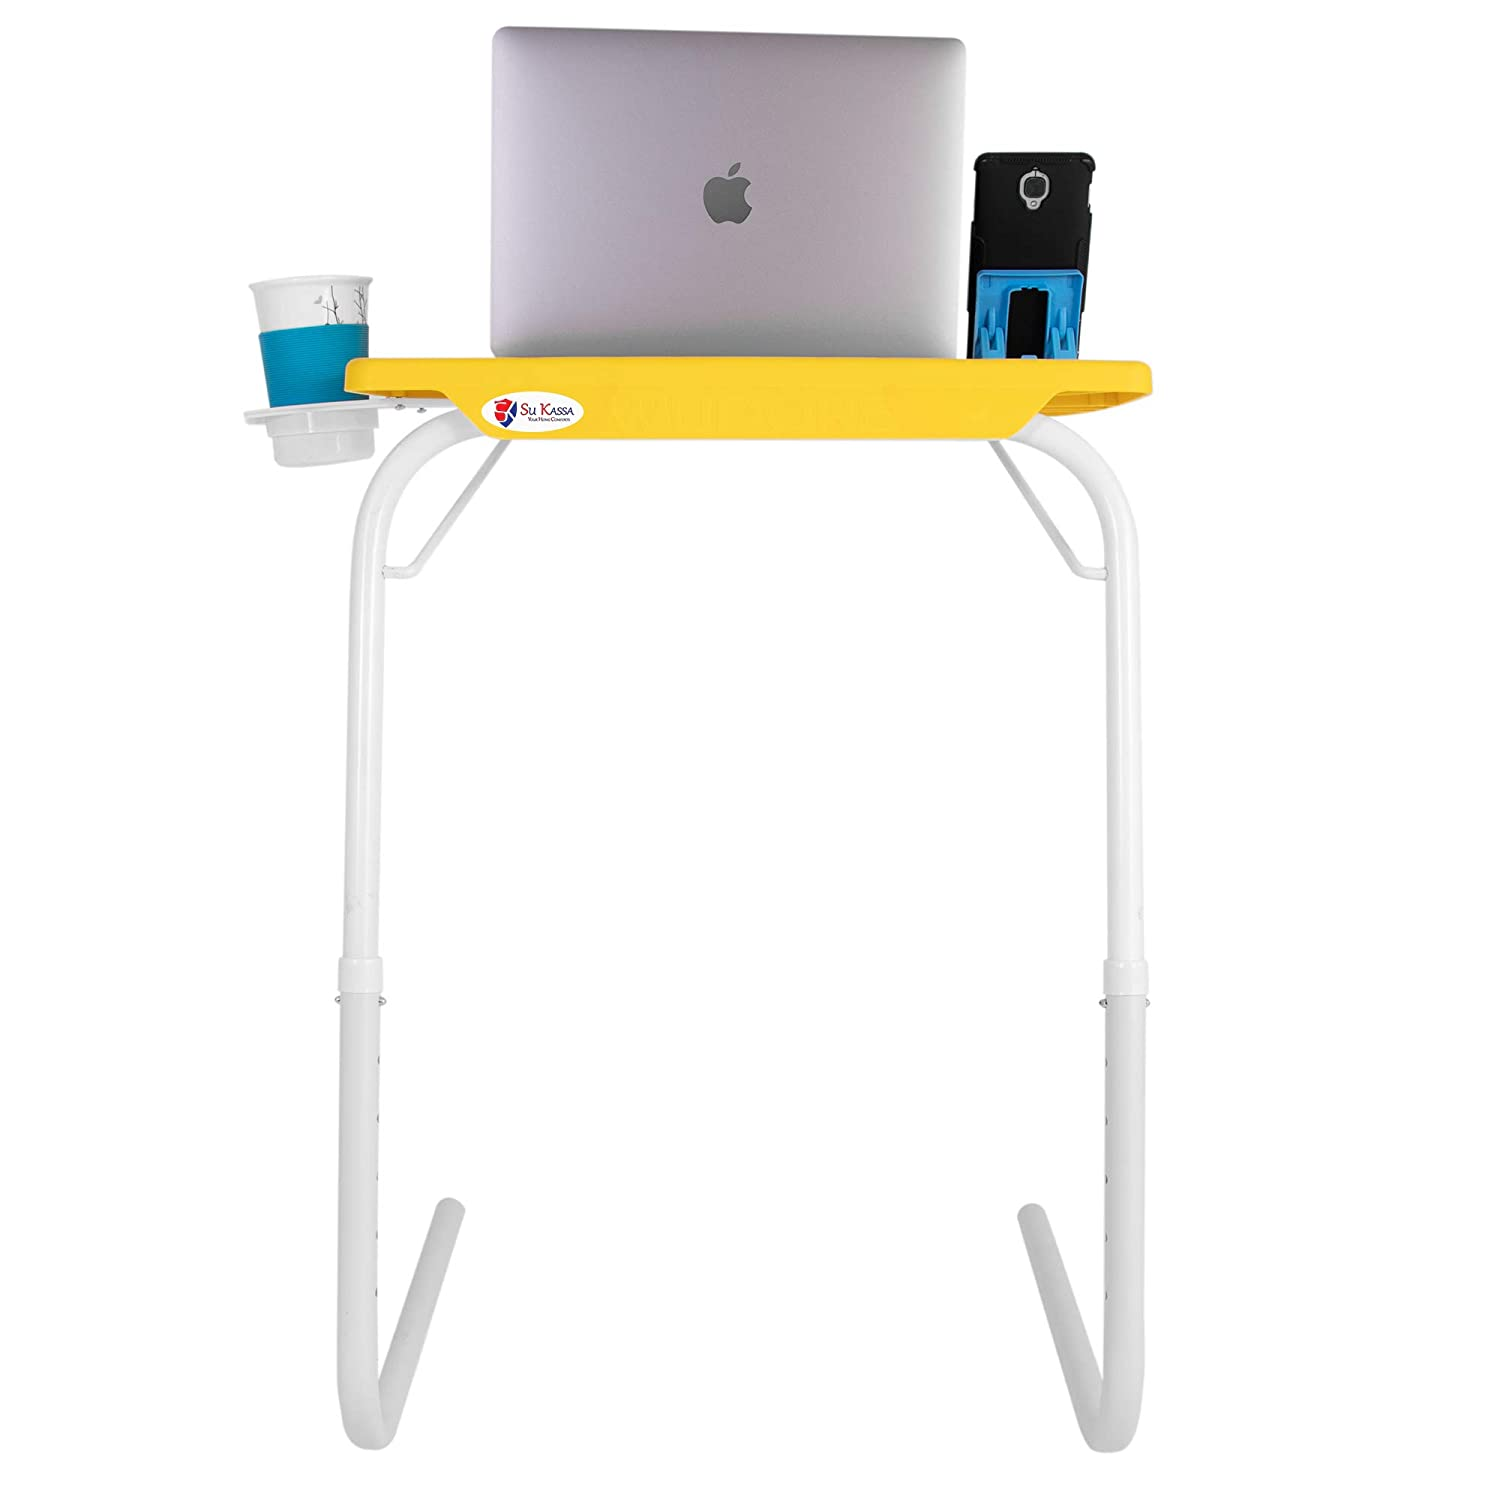 SU KASSA Wudore Series -Multi Purpose Utlity Table- Yellow with White Legs and Two Mobile Holders.